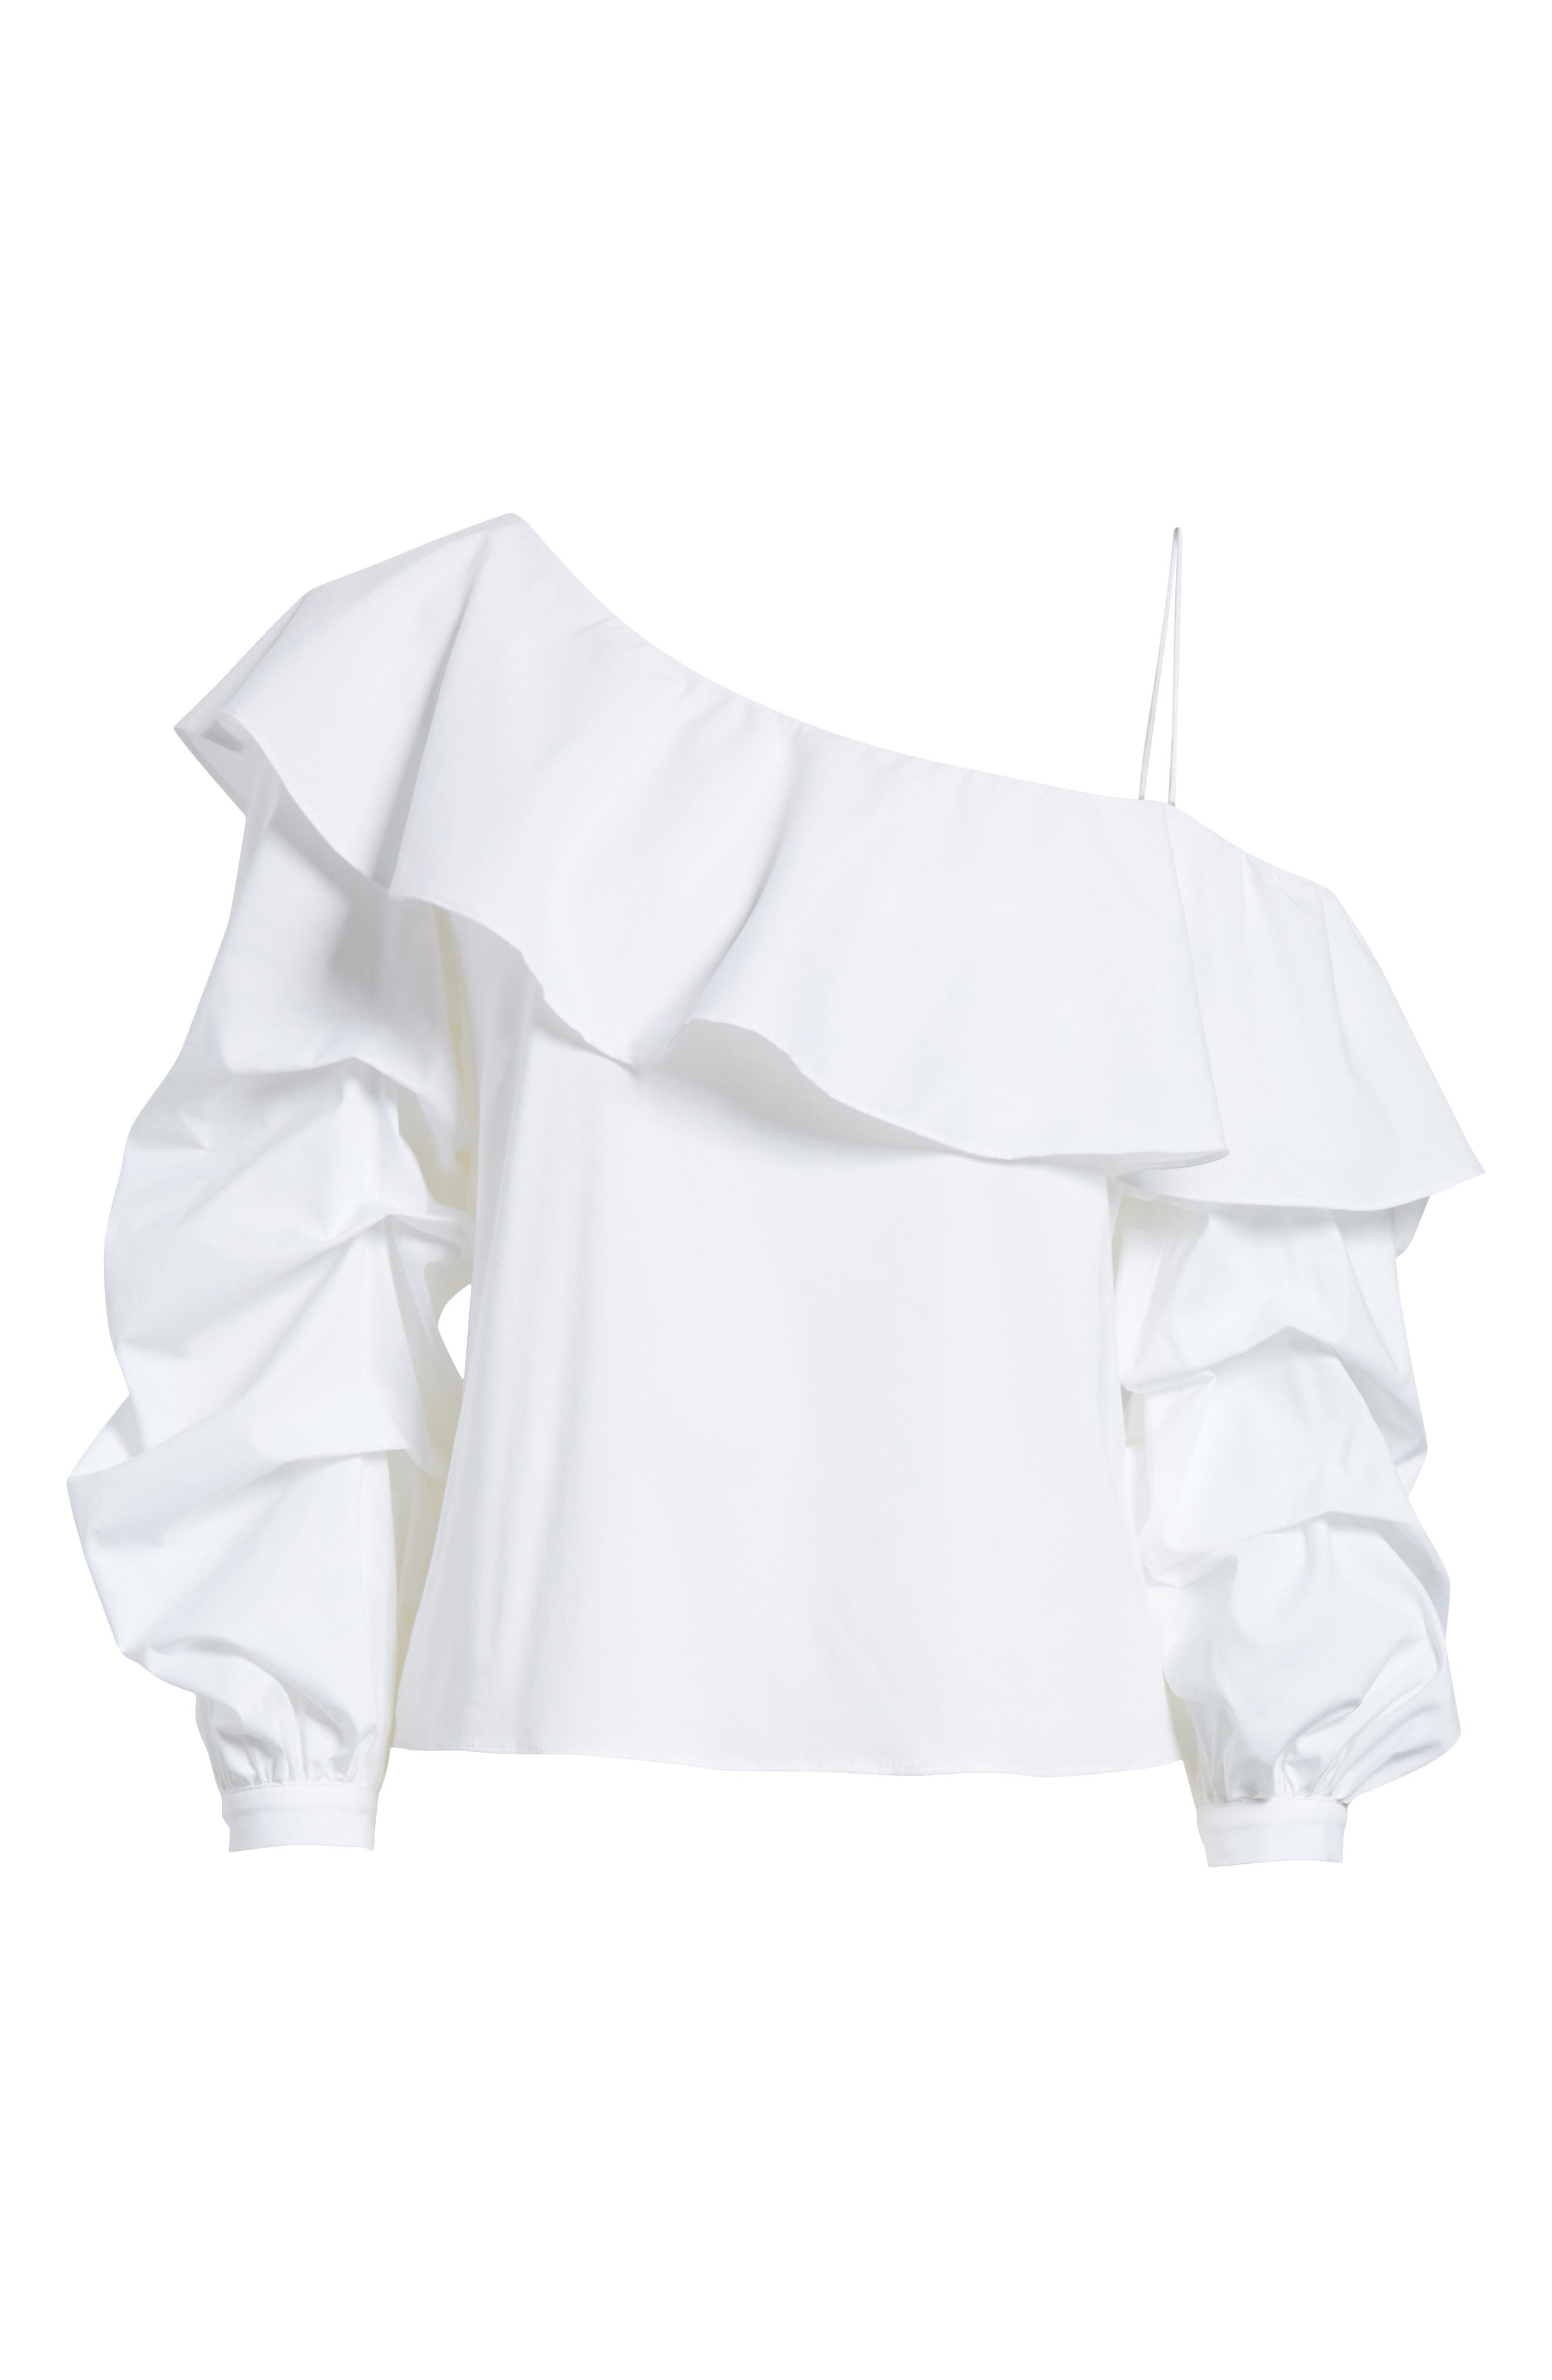 Irvine Ruffle One-Shoulder Blouse,                             Alternate thumbnail 6, color,                             White